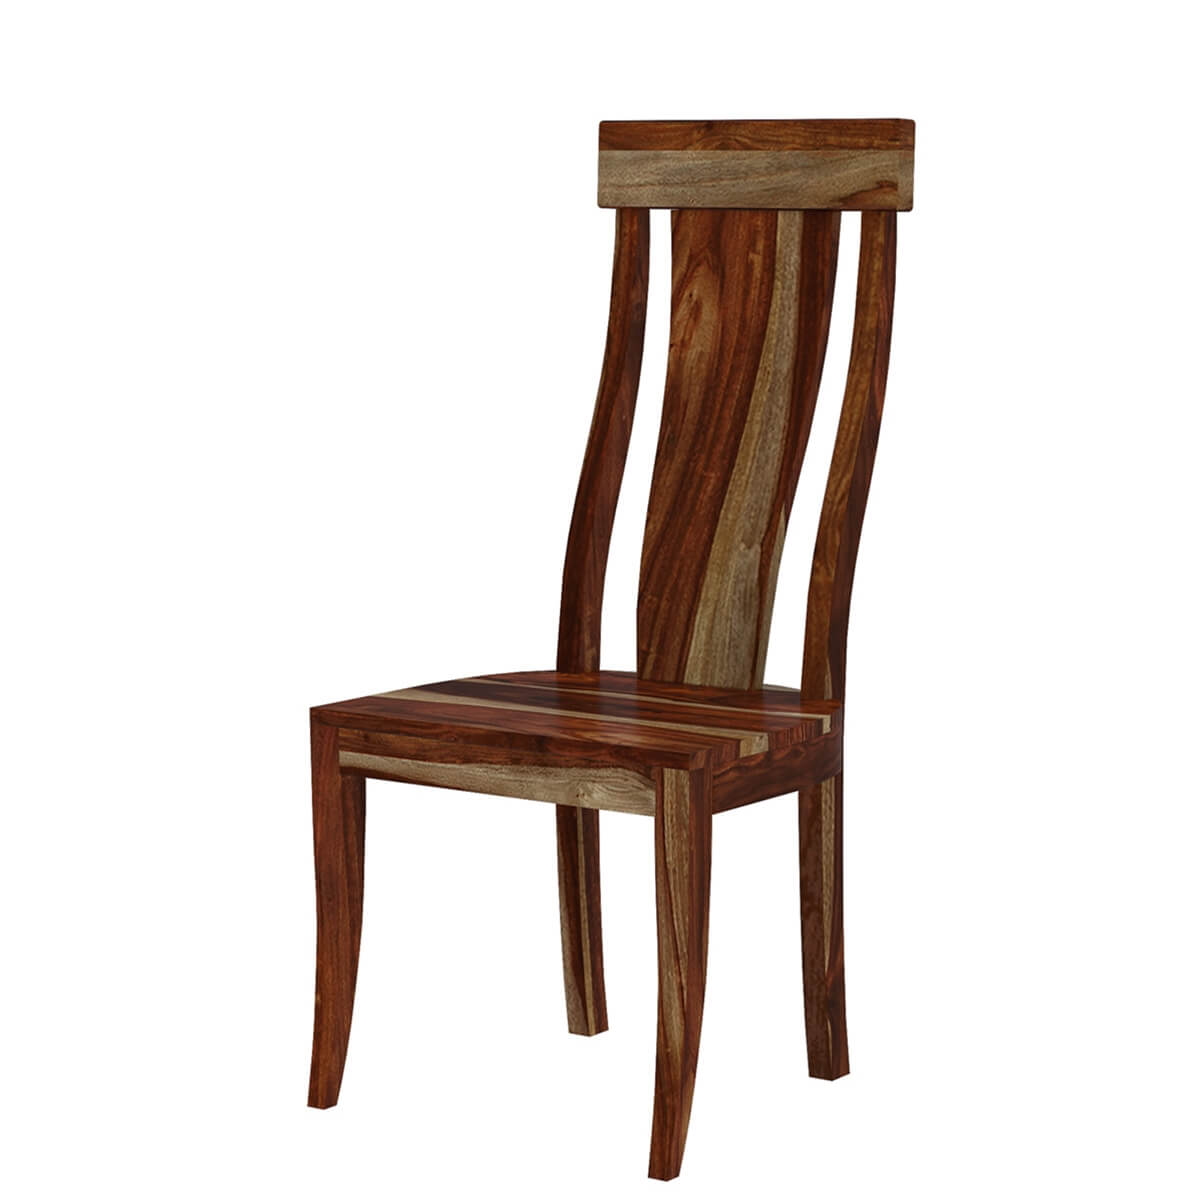 Solid Wood Dining Chairs: Bedford Handcrafted Single Slat Back Solid Wood Dining Chair